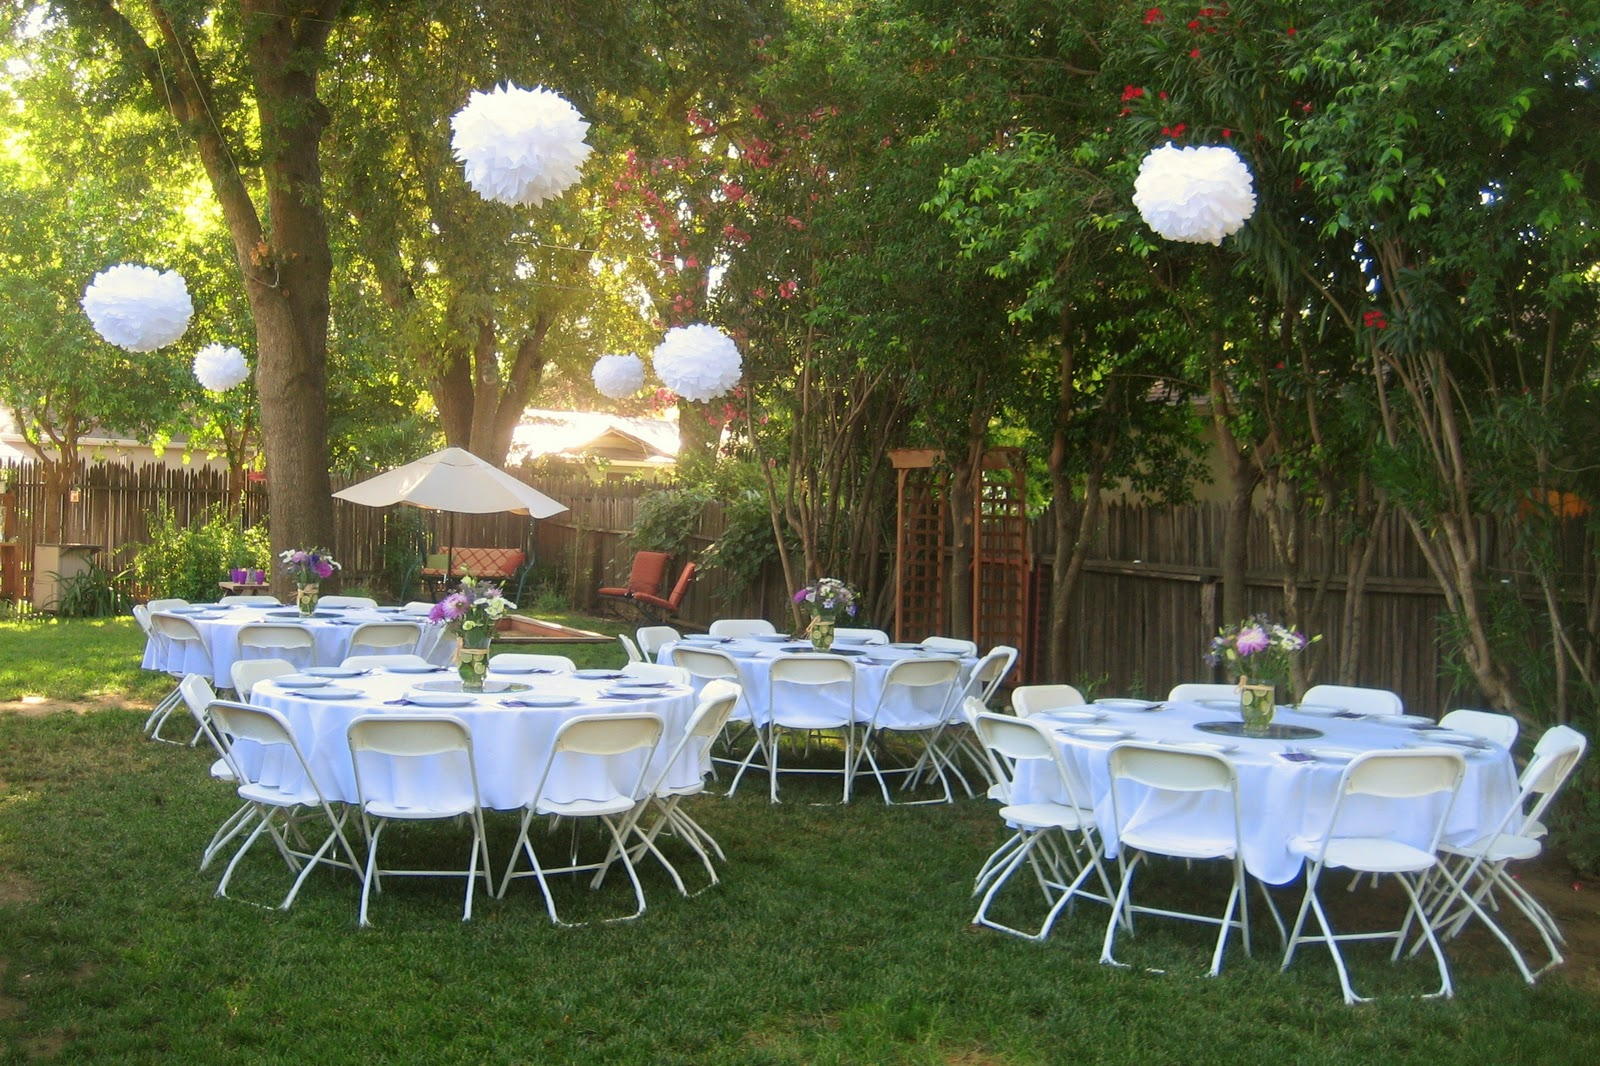 Decorations For Backyard Party : resting place for Completed Projects Backyard Bridal Shower